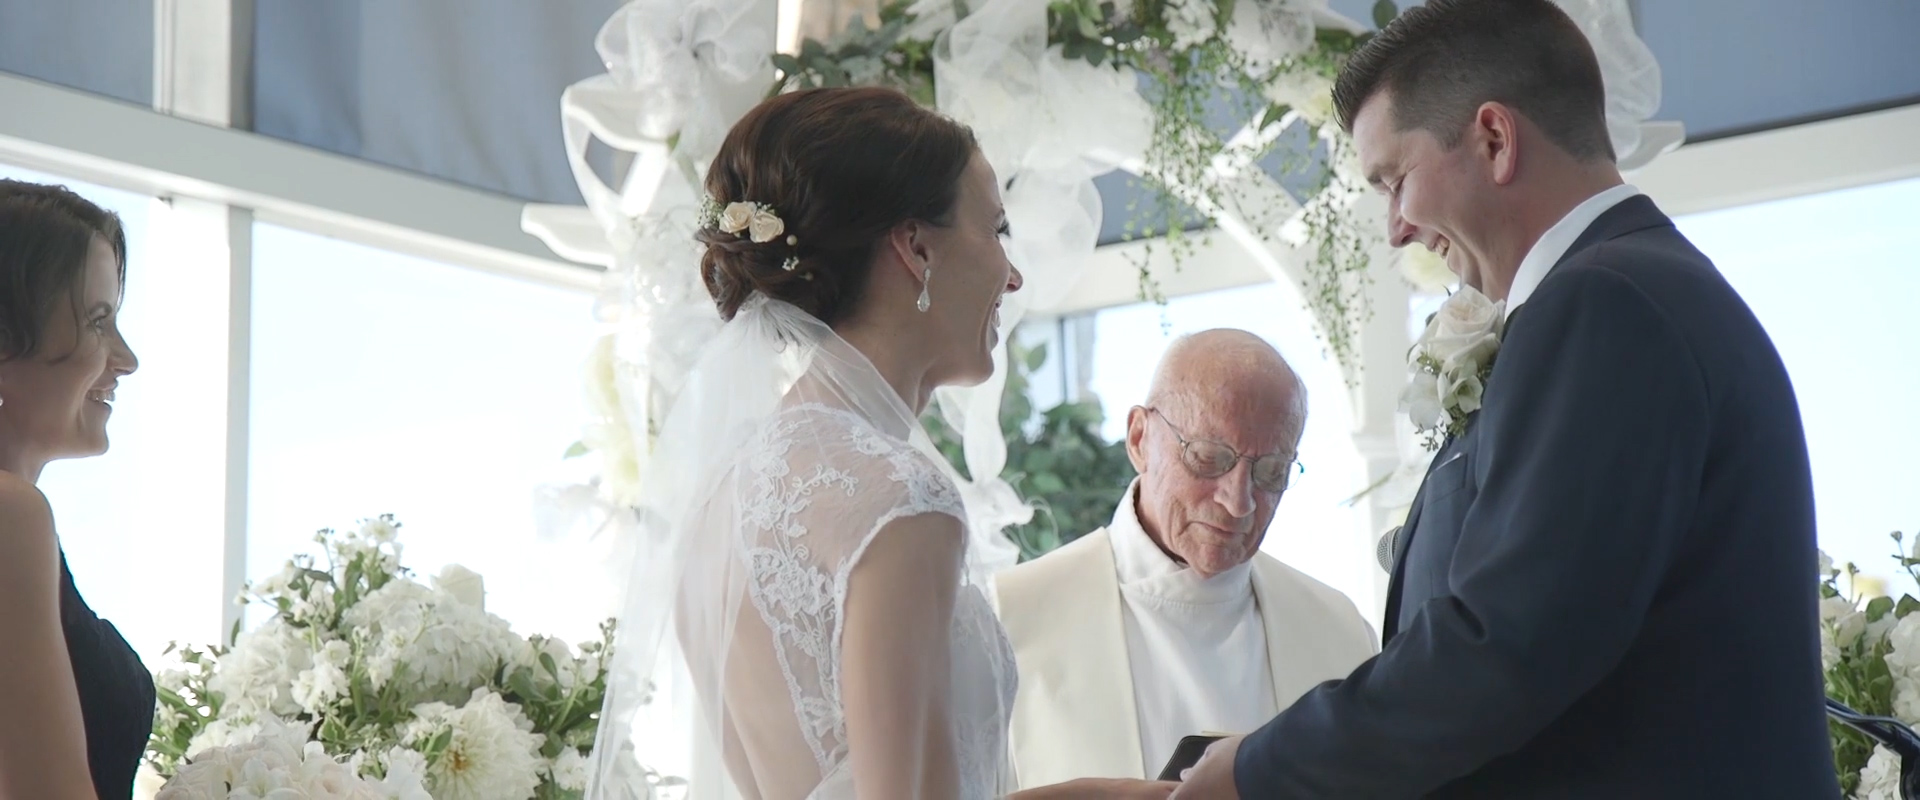 Image of a wedding couple reciting their vows at lionhead golf course; taken from one of our Toronto Wedding Videography videos